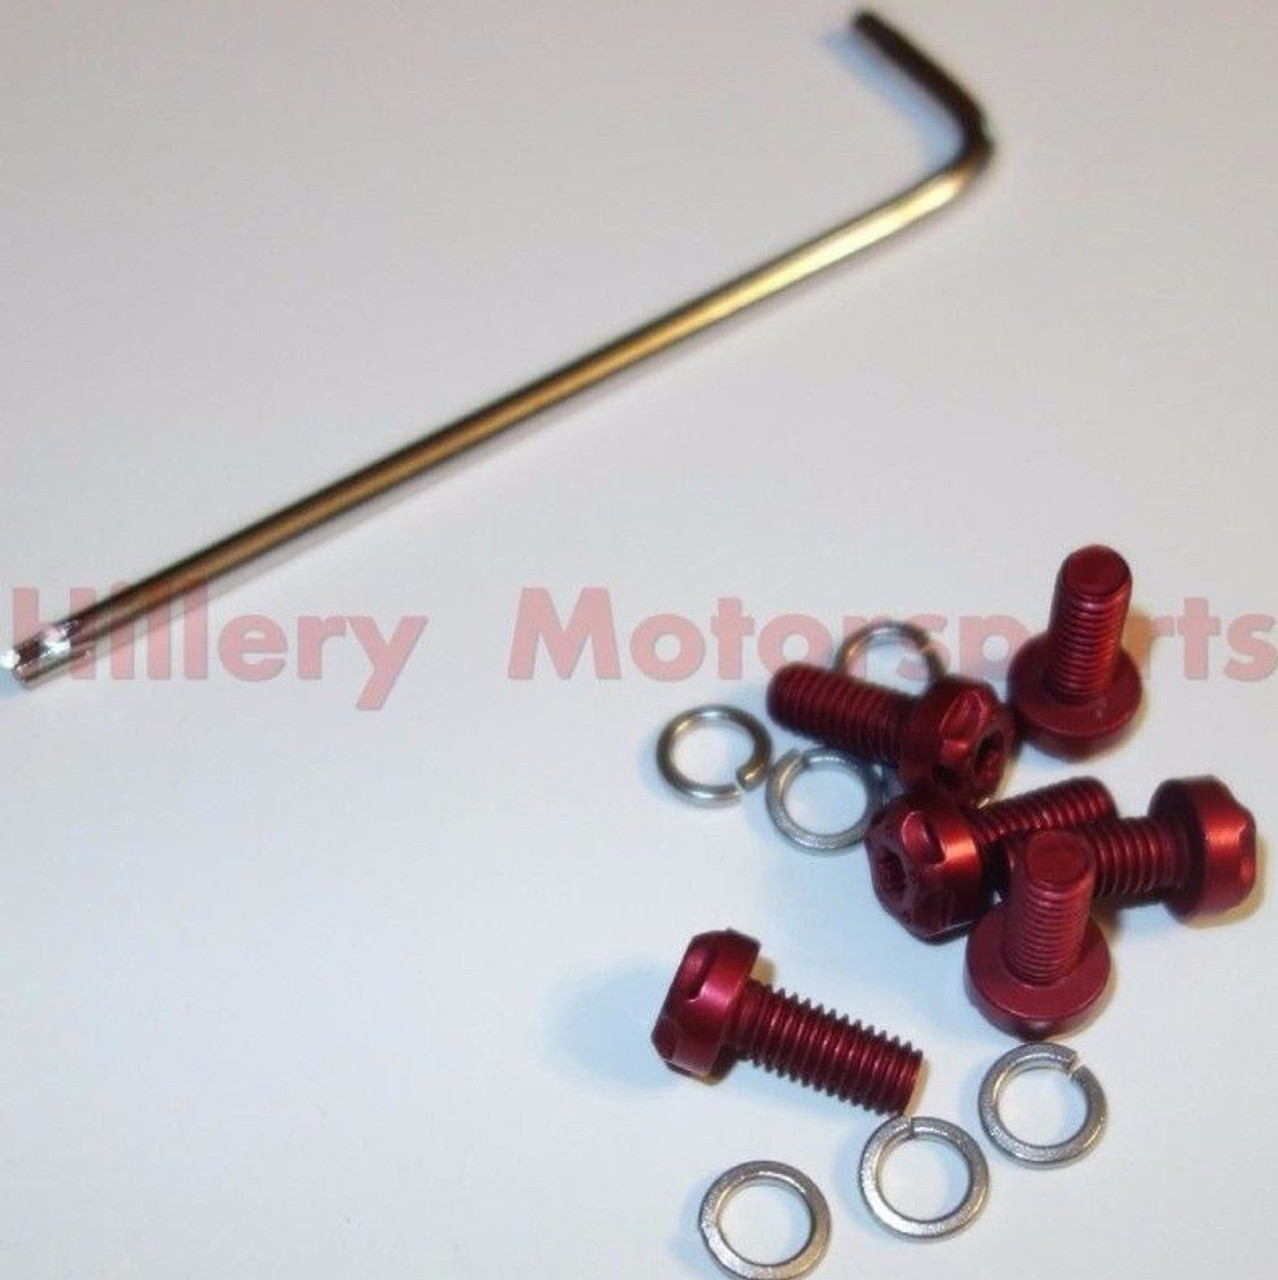 TBR Two Brothers Racing Exhaust Muffler Endcap Bolt Kit Red 005-001-R